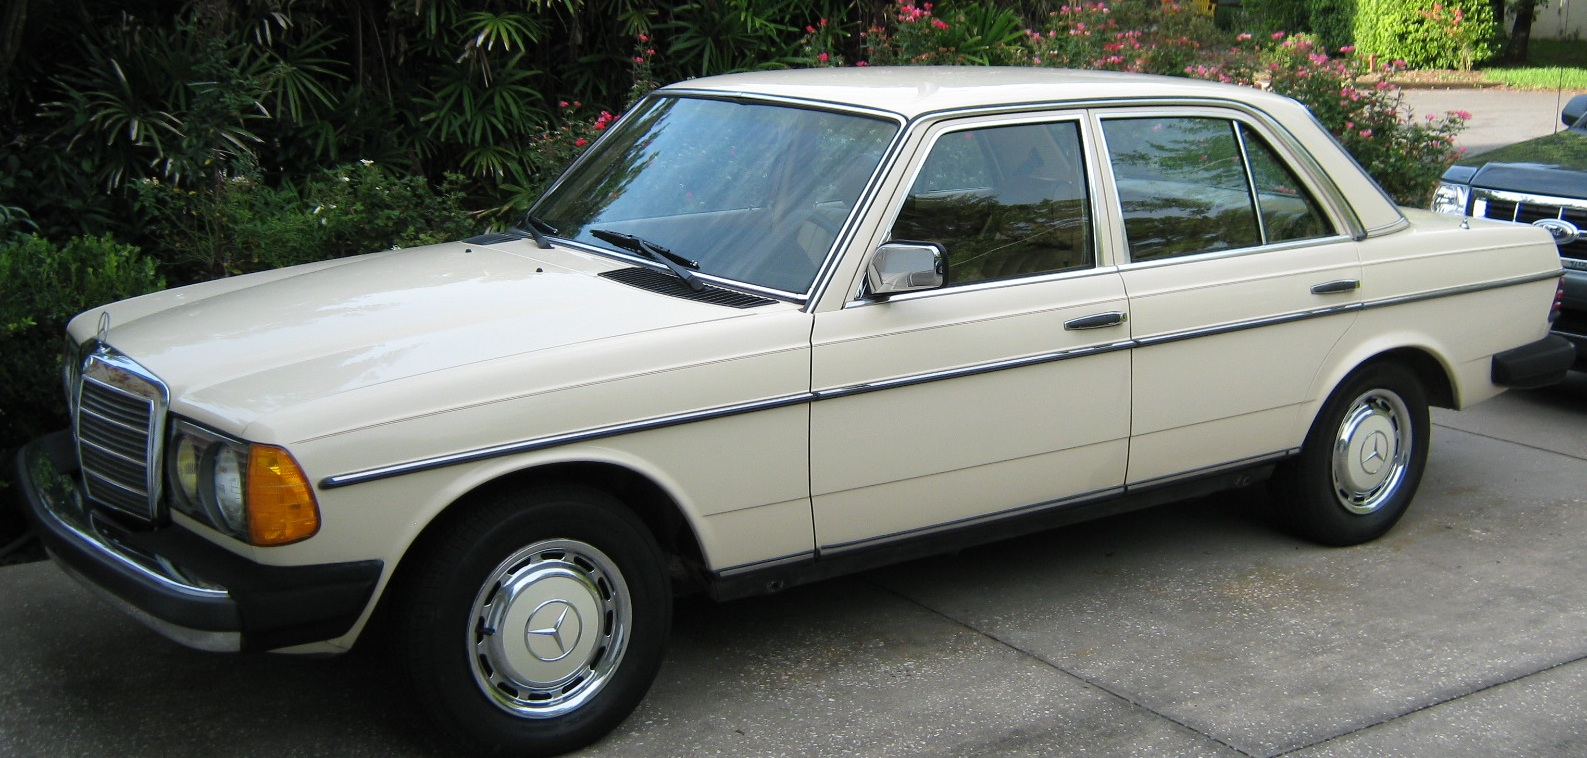 Part numbers request for w123 1981 240d mercedes benz for Mercedes benz slk for sale near me